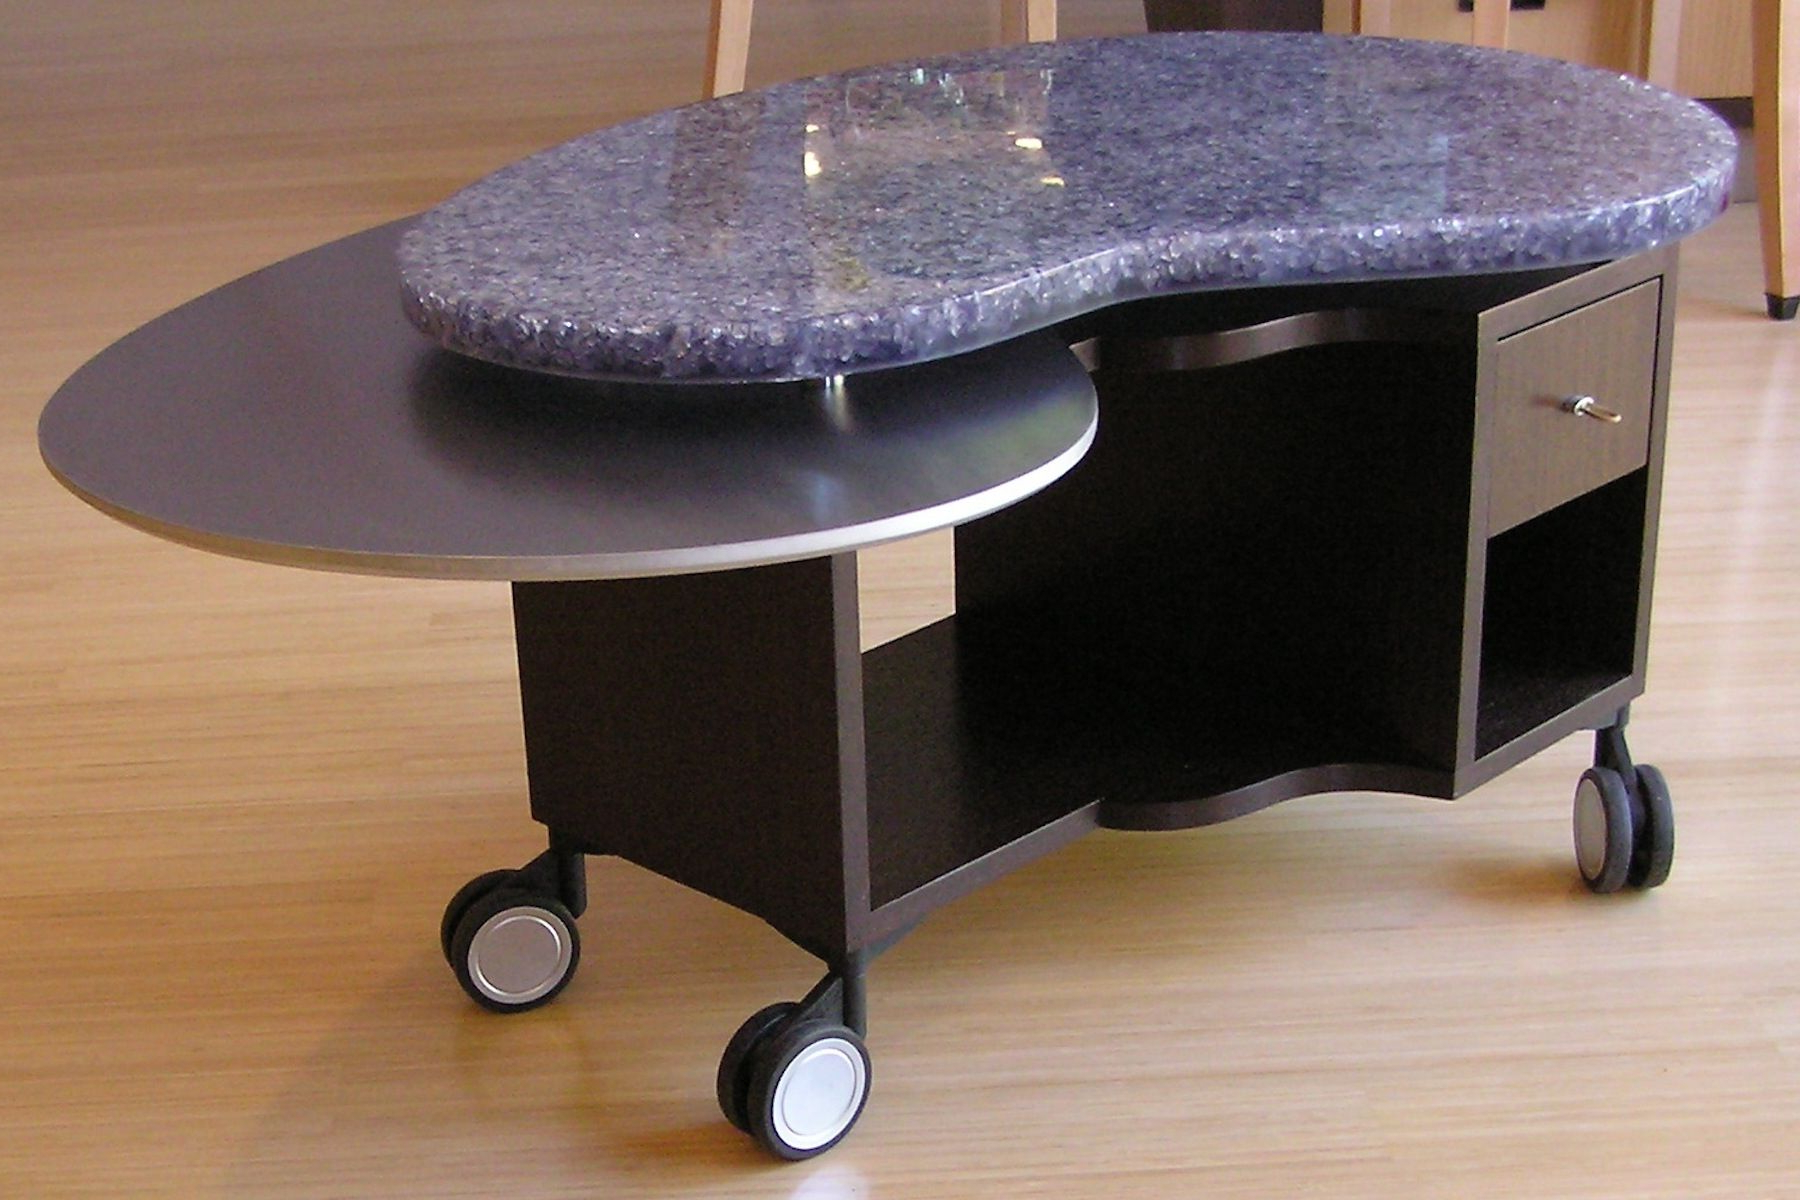 Hand Crafted Rolling Jelly Beanlaurabirnsdesign Eco Furnishings Regarding 2018 Jelly Bean Coffee Tables (View 5 of 20)